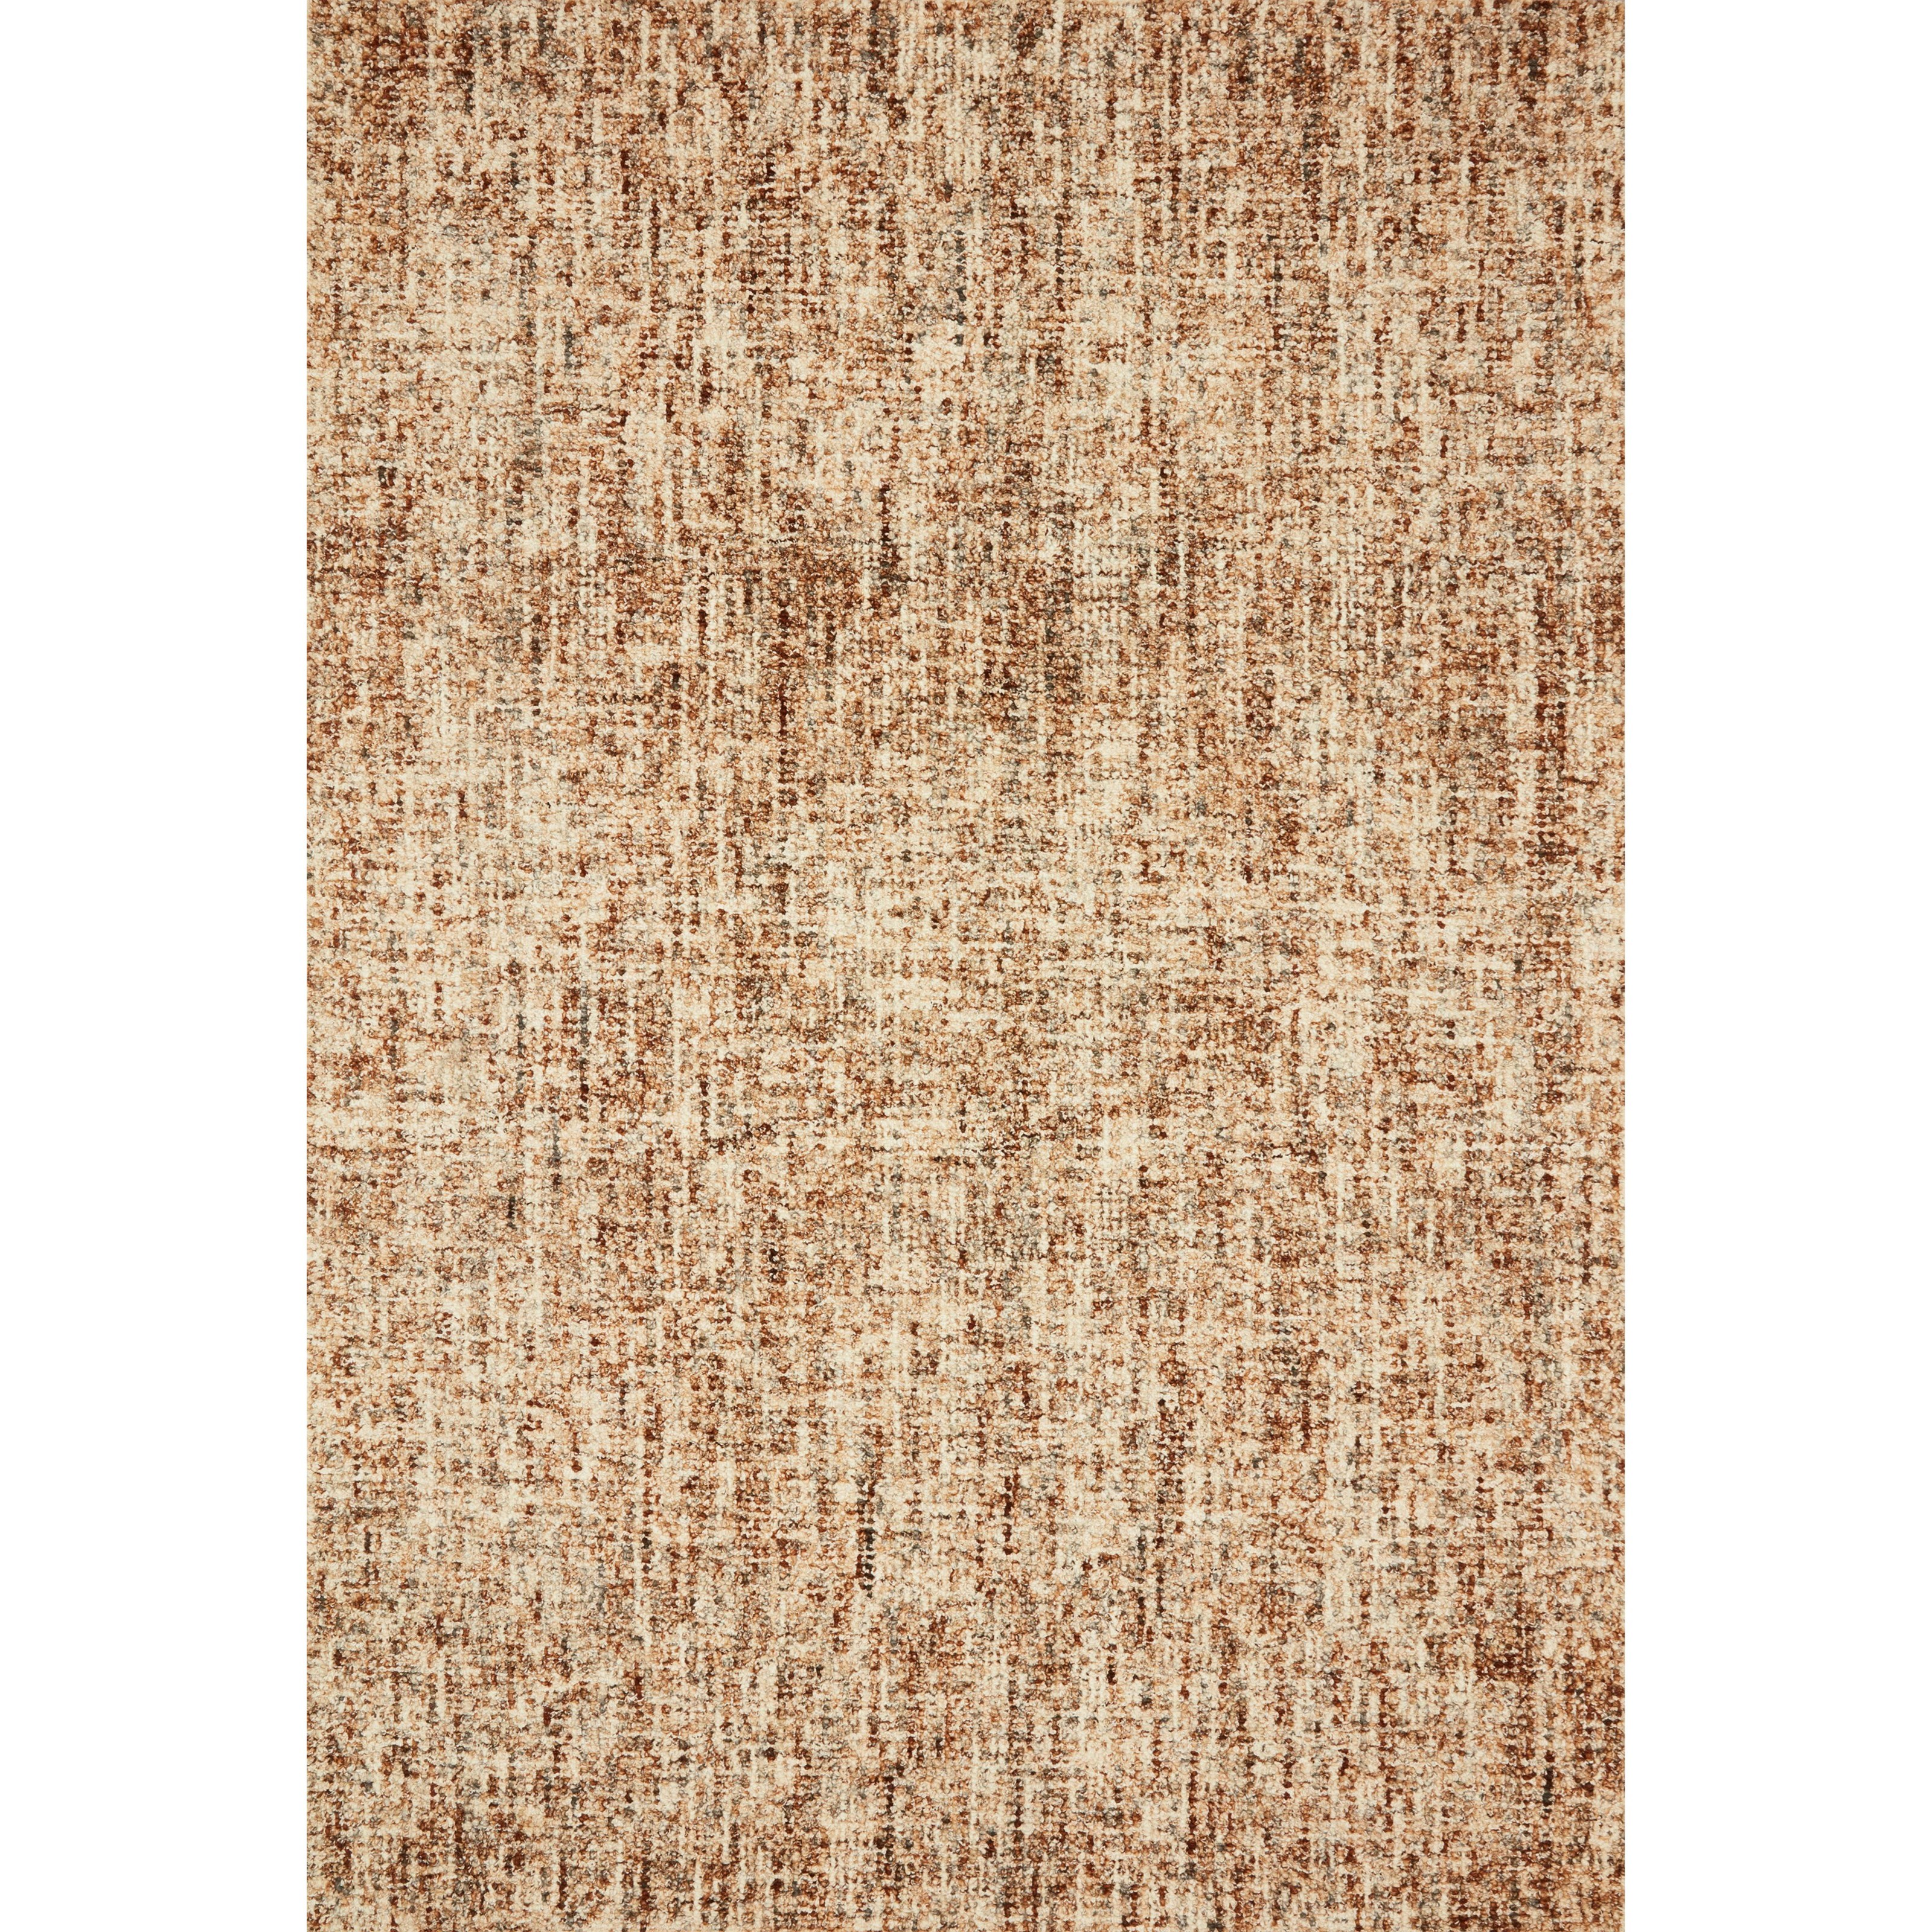 """Harlow 7'9"""" x 9'9"""" Rust / Charcoal Rug by Loloi Rugs at Sprintz Furniture"""